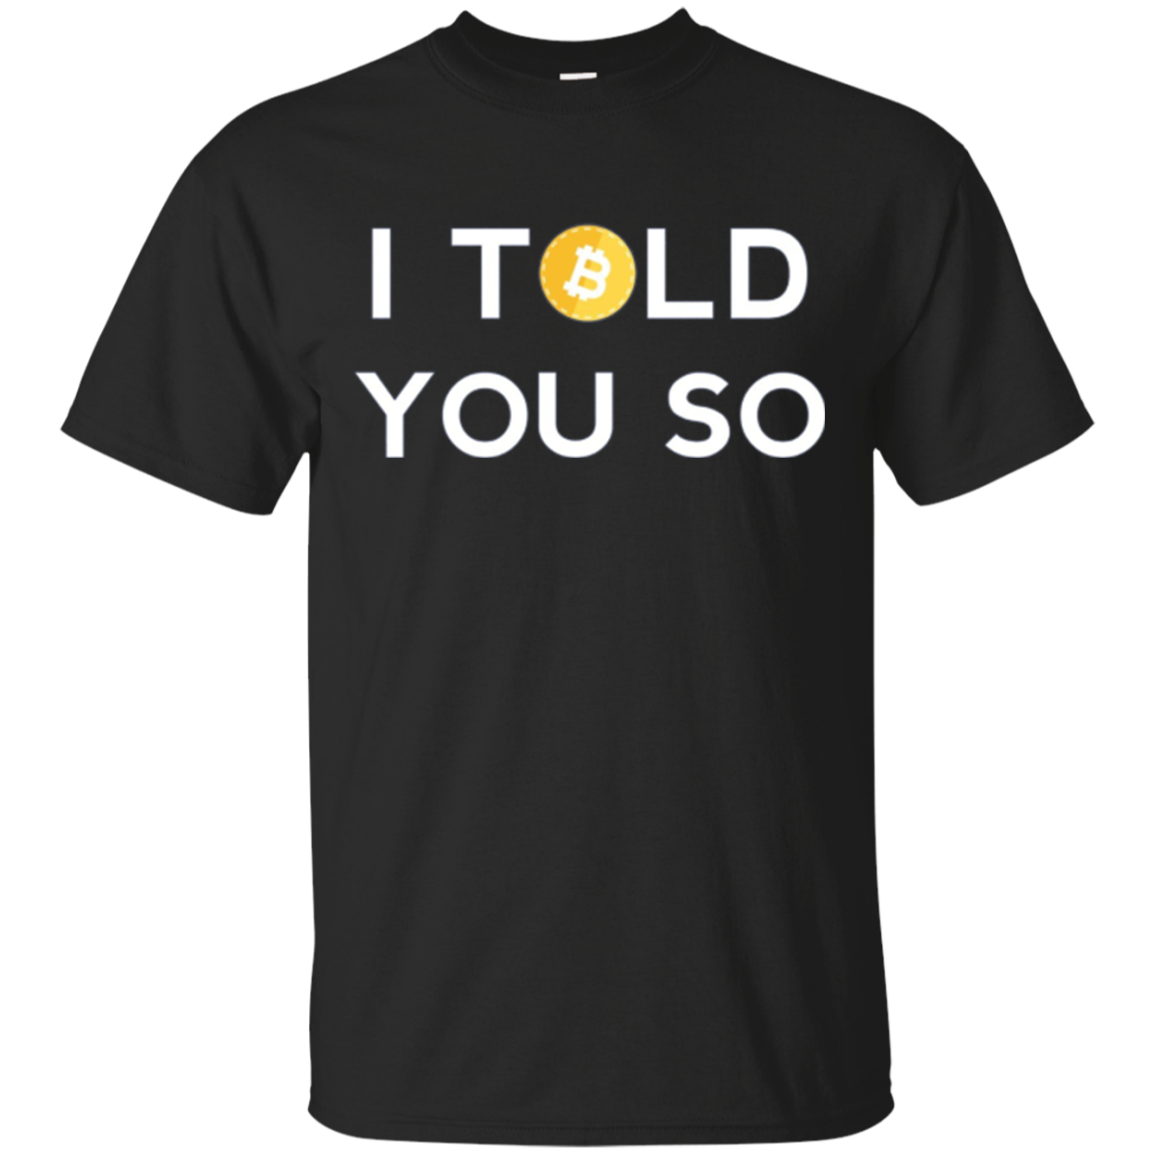 Bitcoin T-shirt I TOLD YOU SO funny for Bitcoin Owners Miner